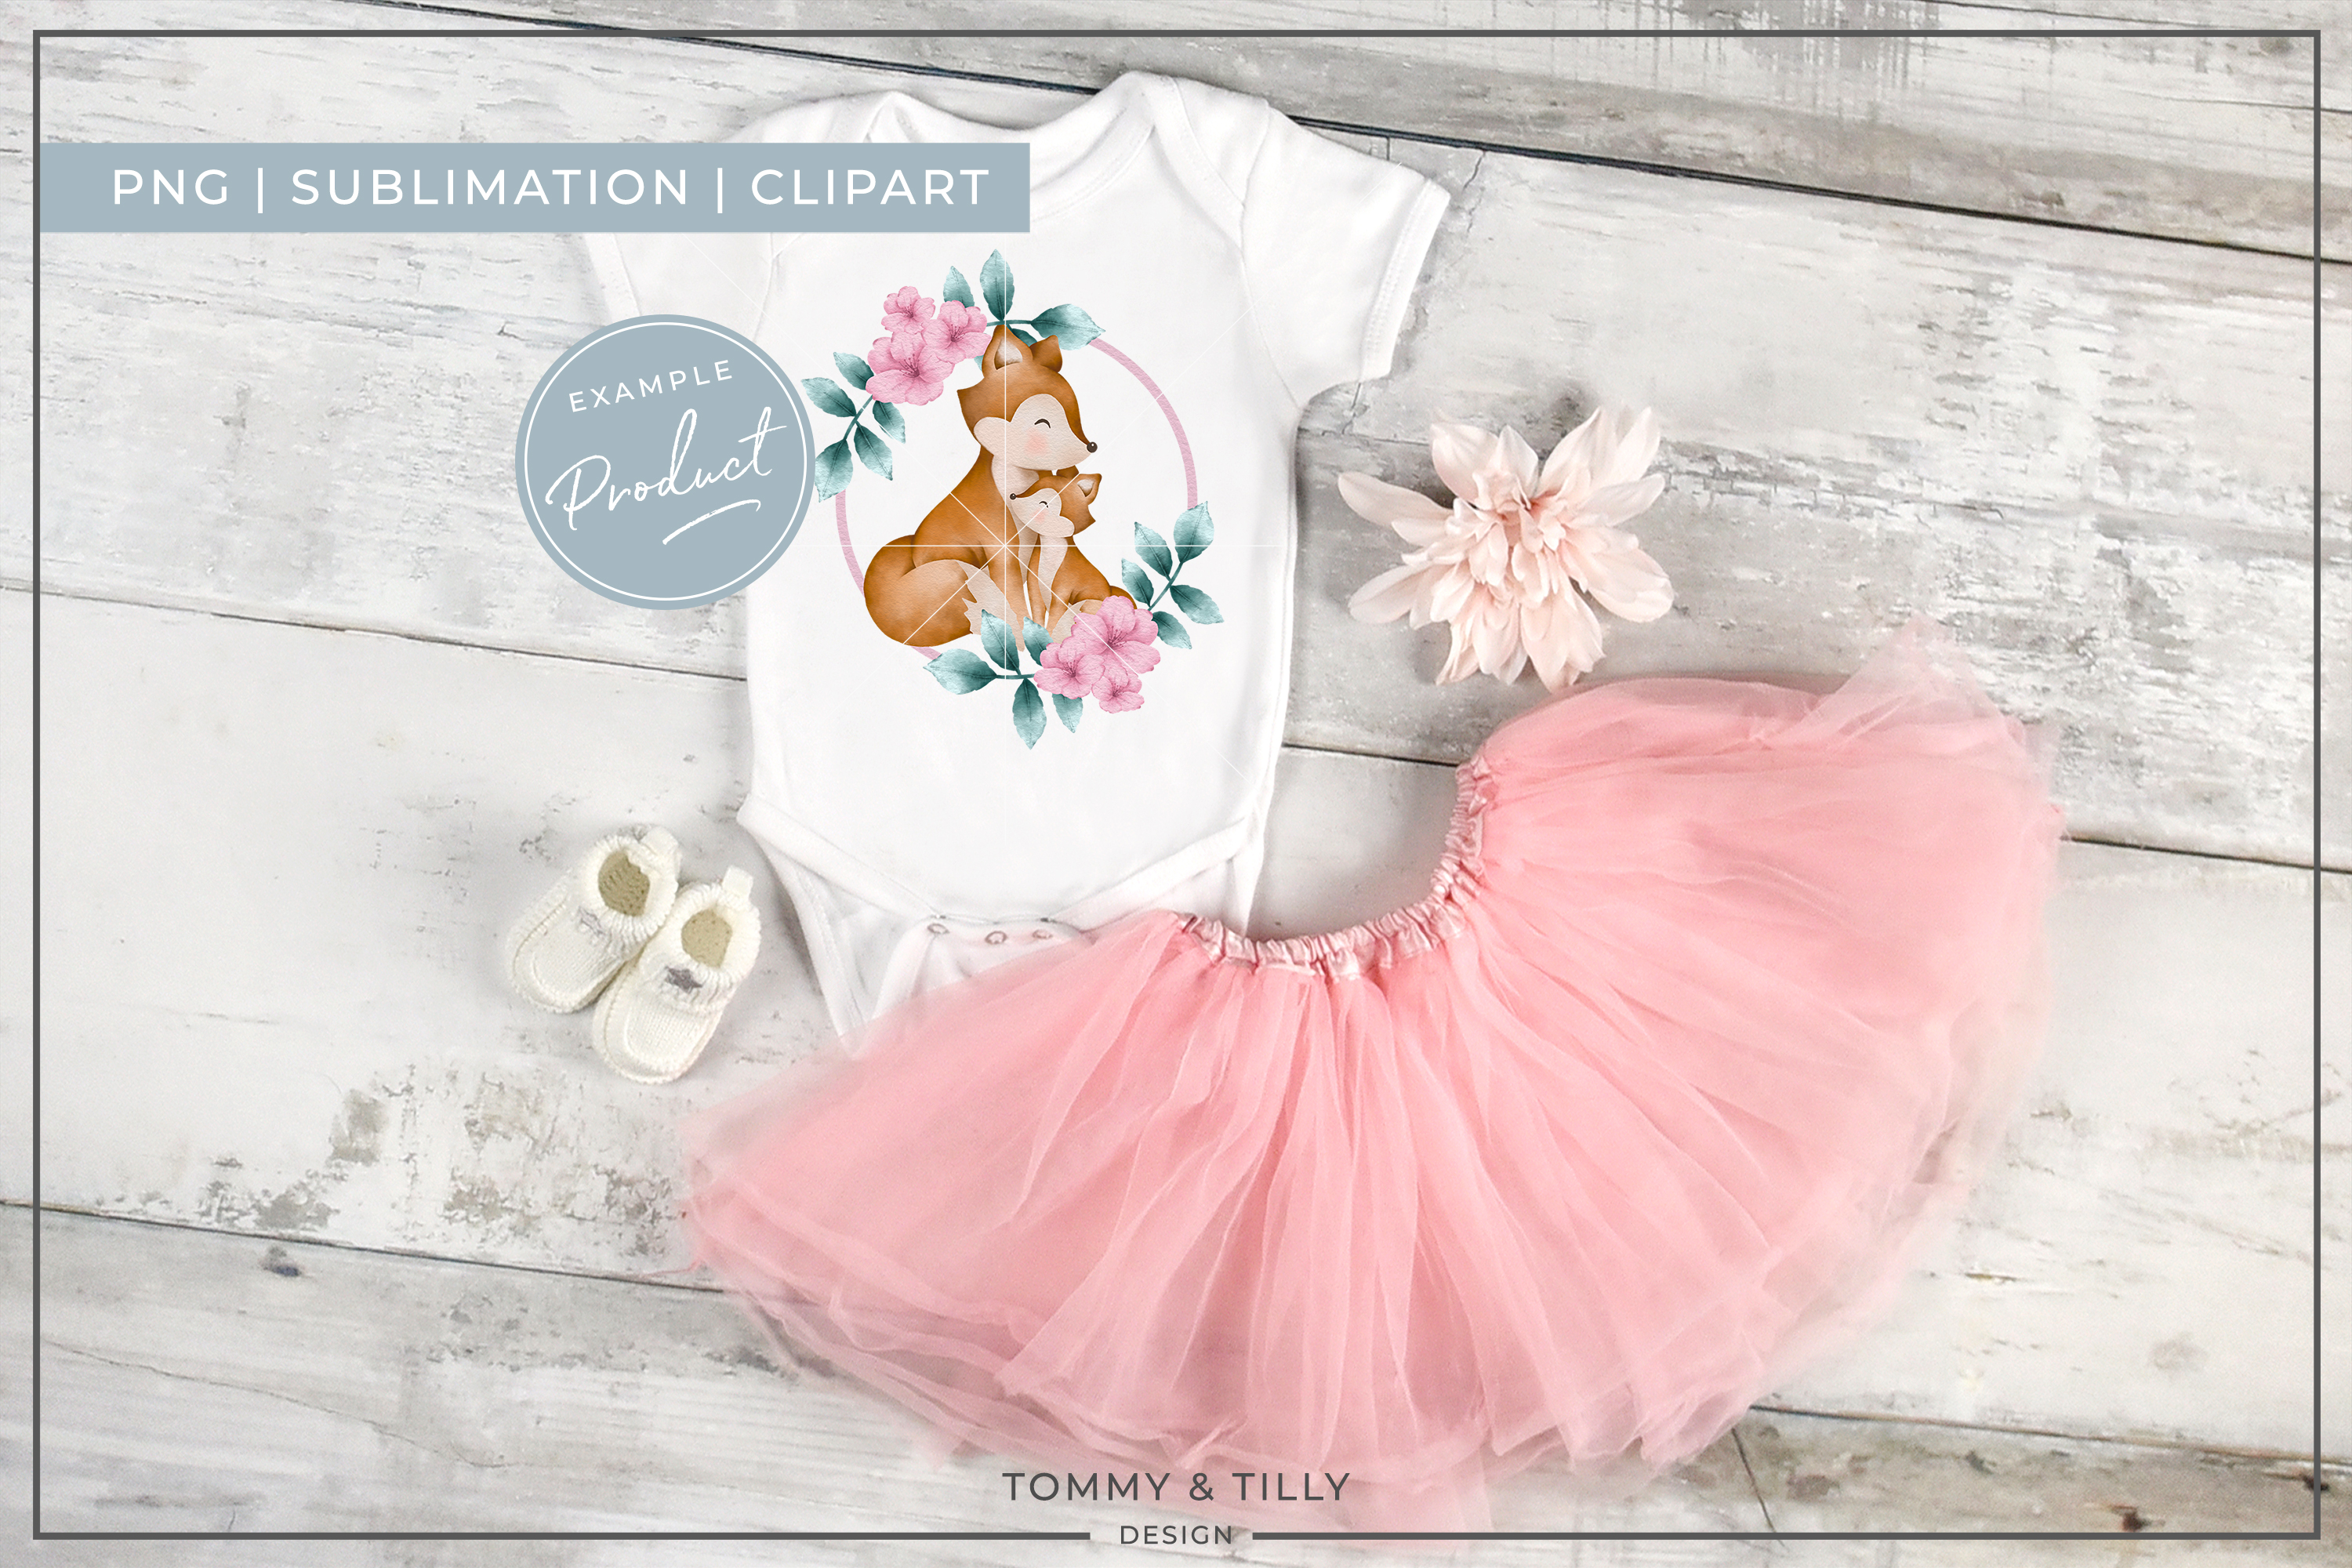 Wreath Mummy and Baby Fox - Sublimation PNG Clipart example image 4